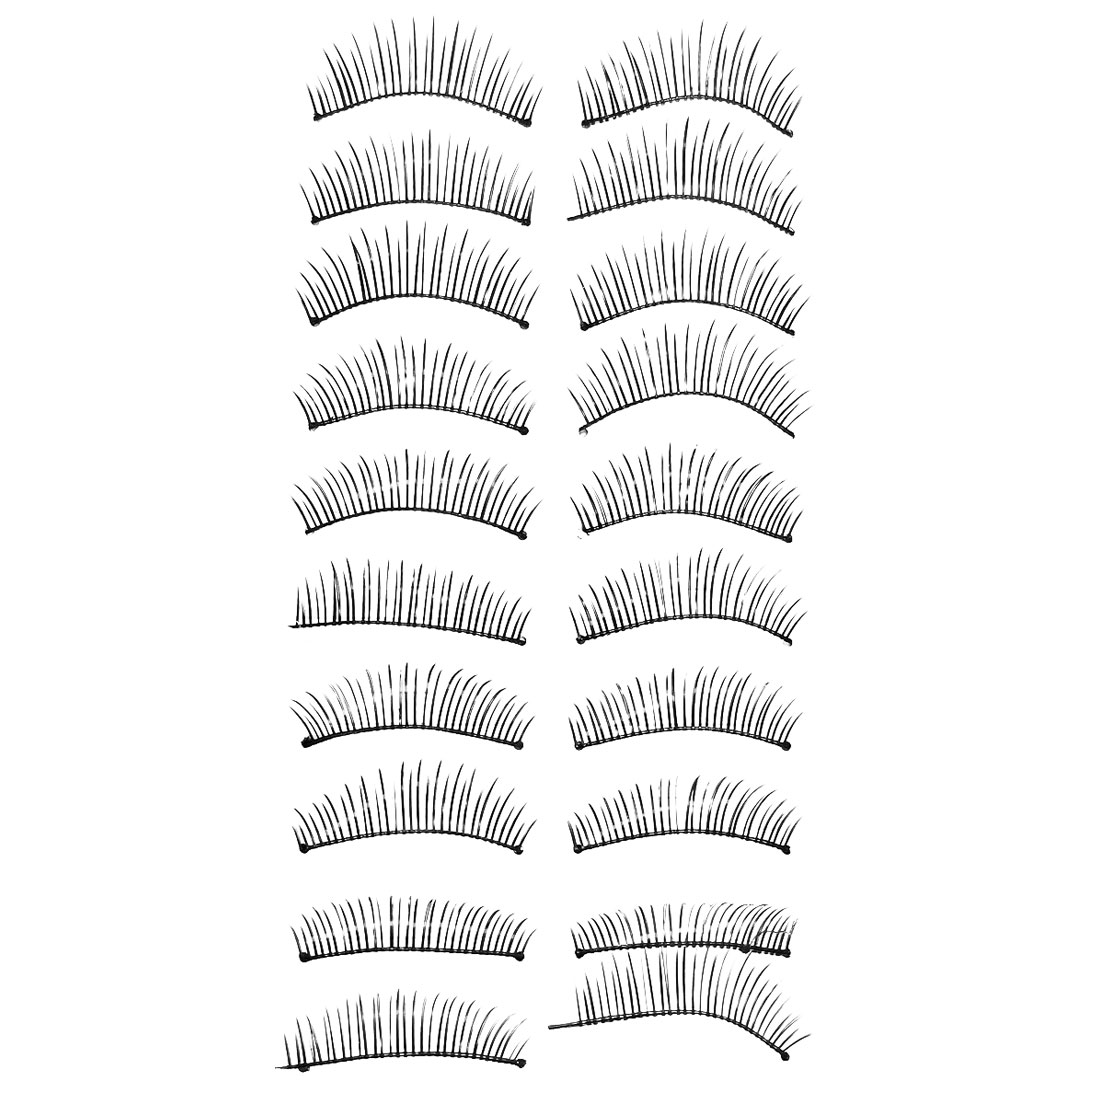 Women Soft Plastic Volume Curl Long False Eyelashes Cosmetic Tool Black 10 Pairs